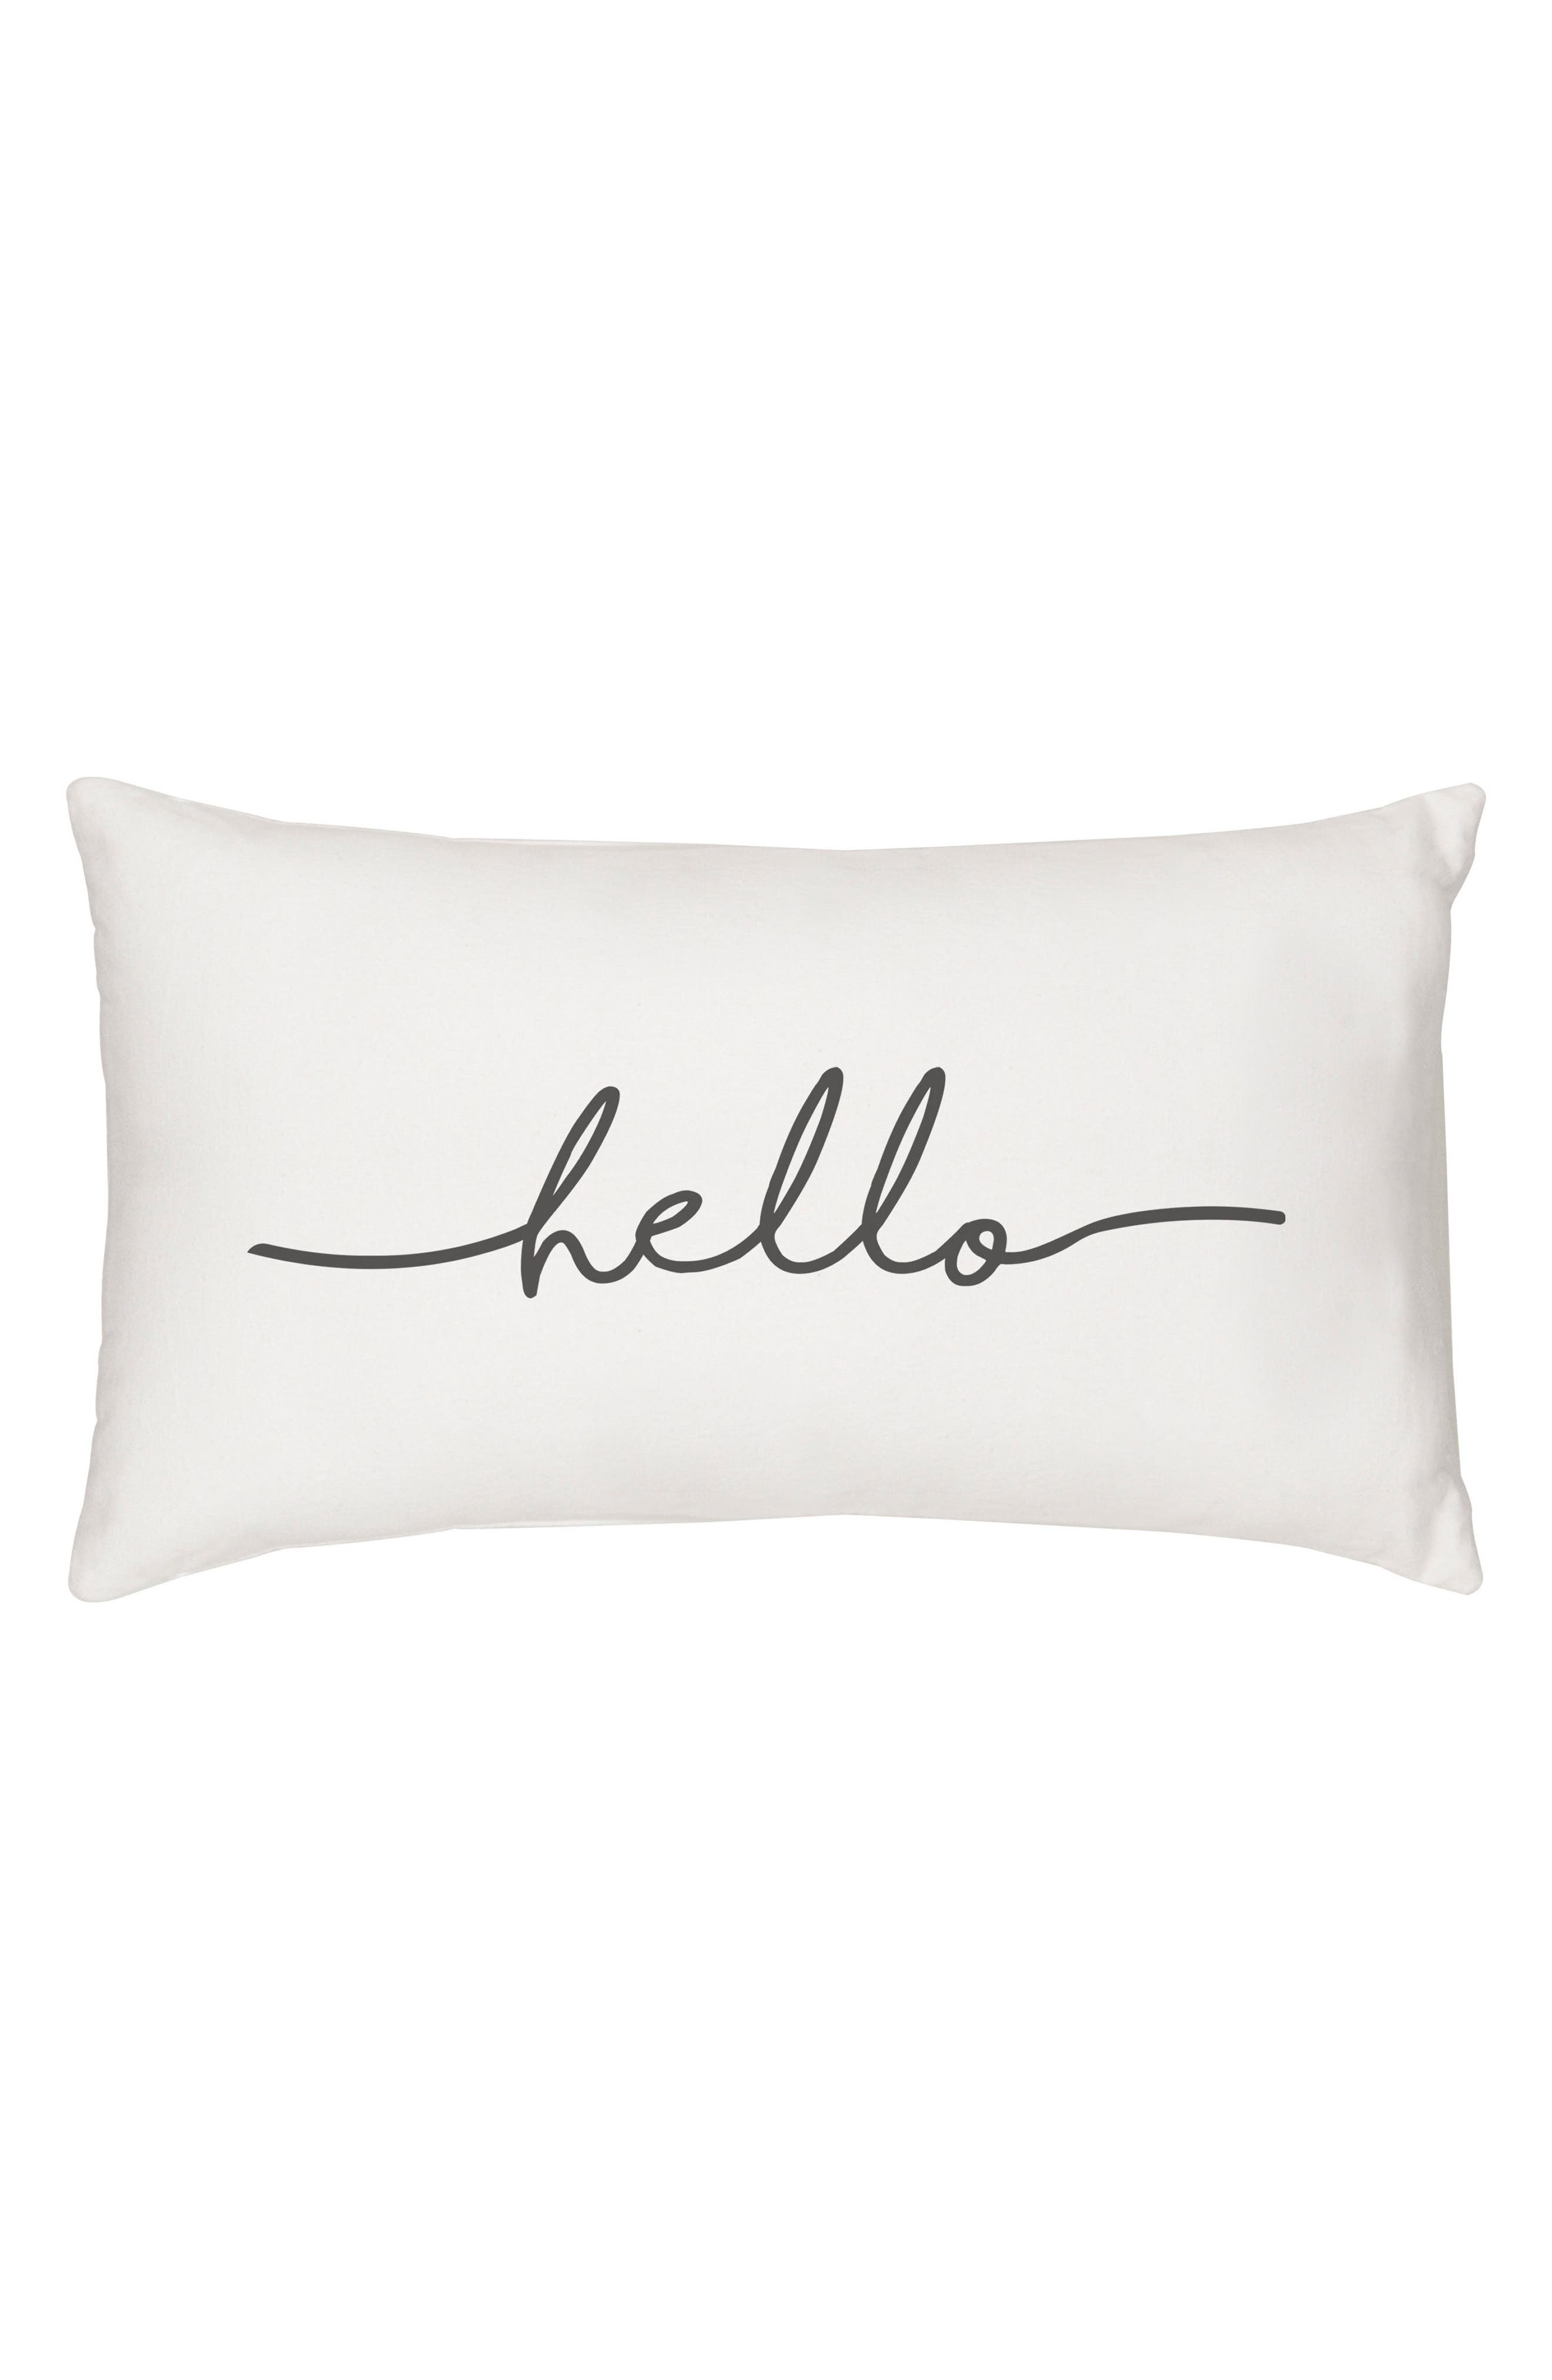 Alternate Image 1 Selected - Cathy's Concepts Hello Lumbar Accent Pillow